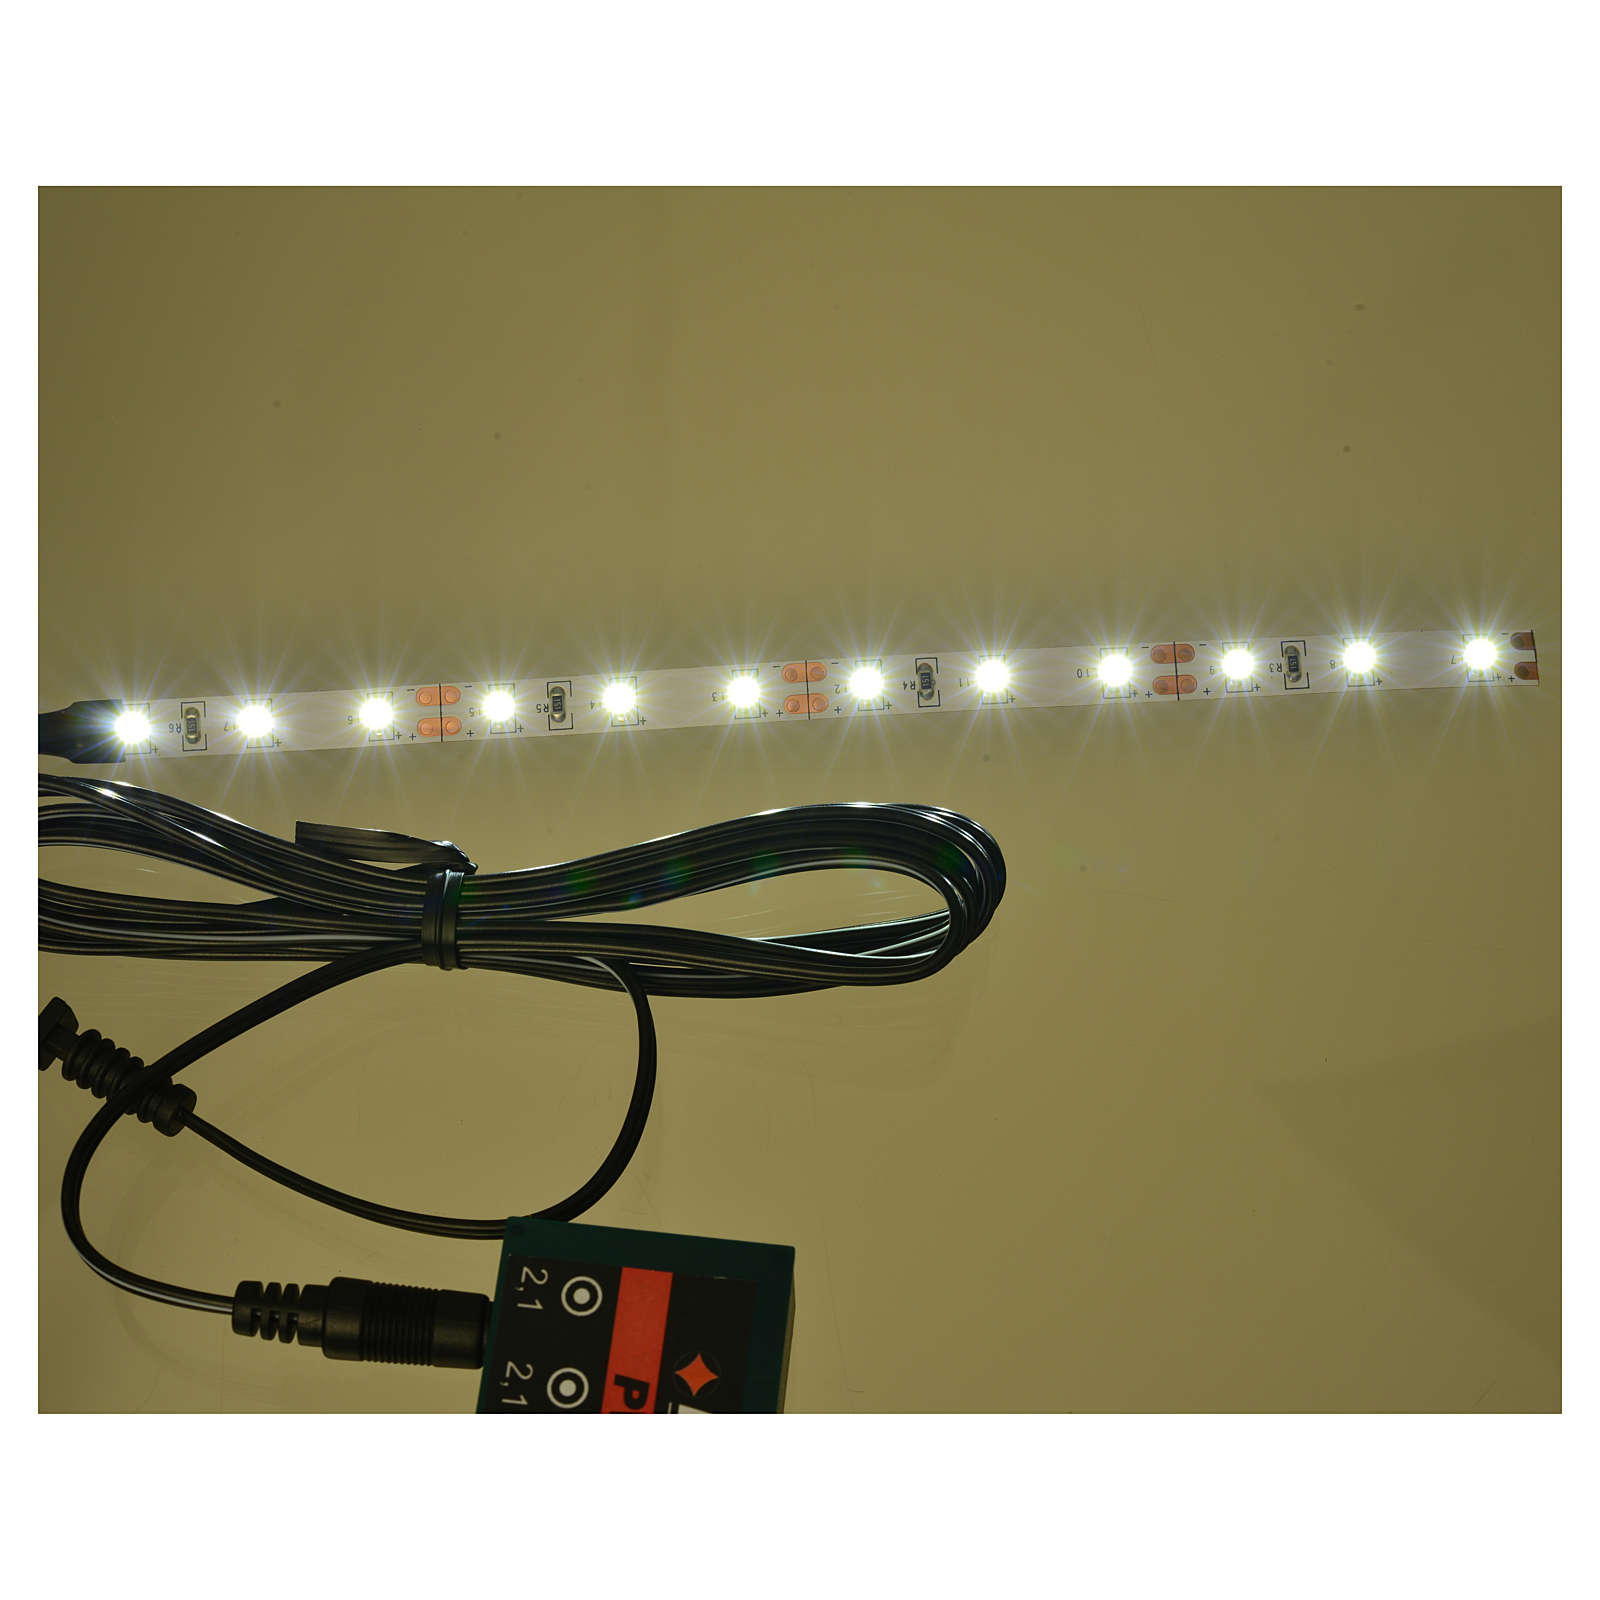 Led strisce 12 led cm 0,8x16 cm bianca fredda per Frisalight 4